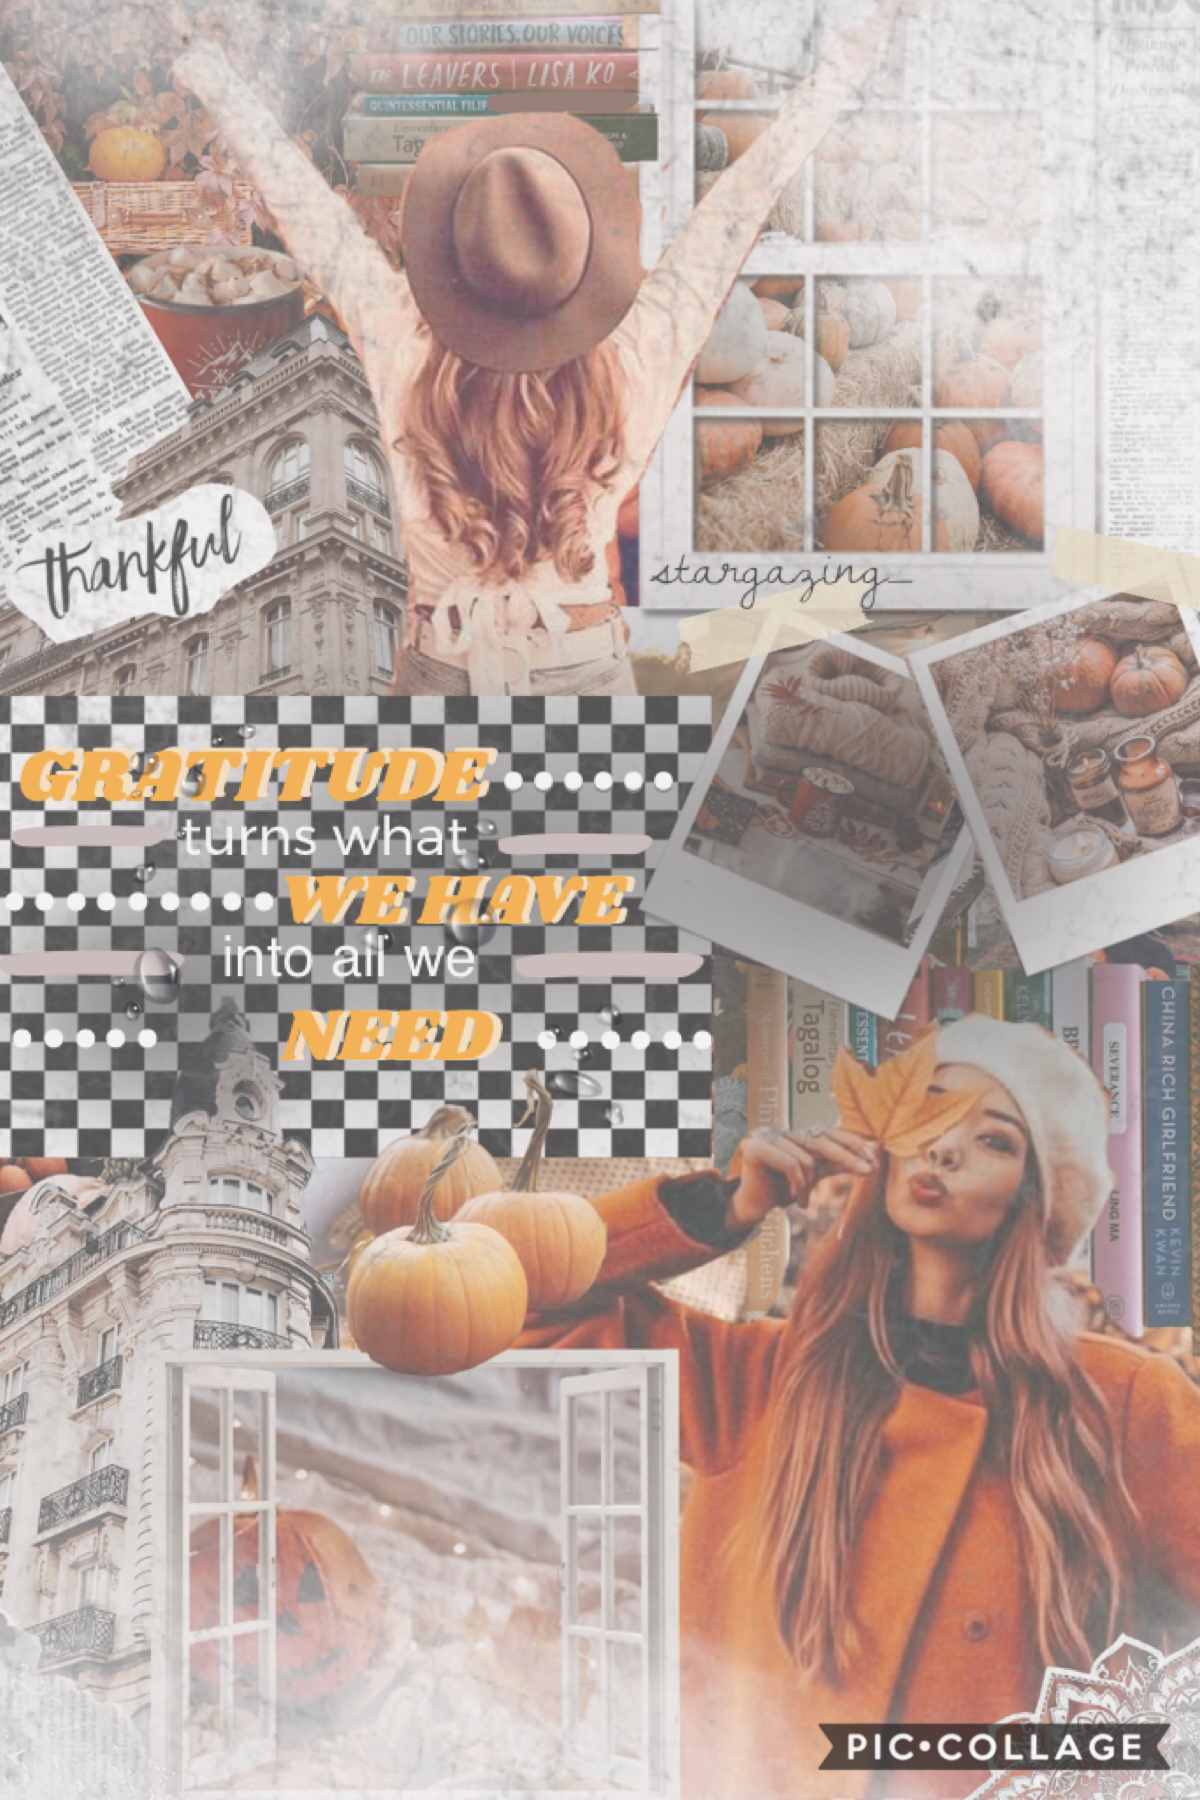 tap 🍂🍁 hey everyone 💥 Actually really proud of this one 🧡 how's life going for you guys? QOTD: fav fruit? AOTD: 🍊 or 🍒